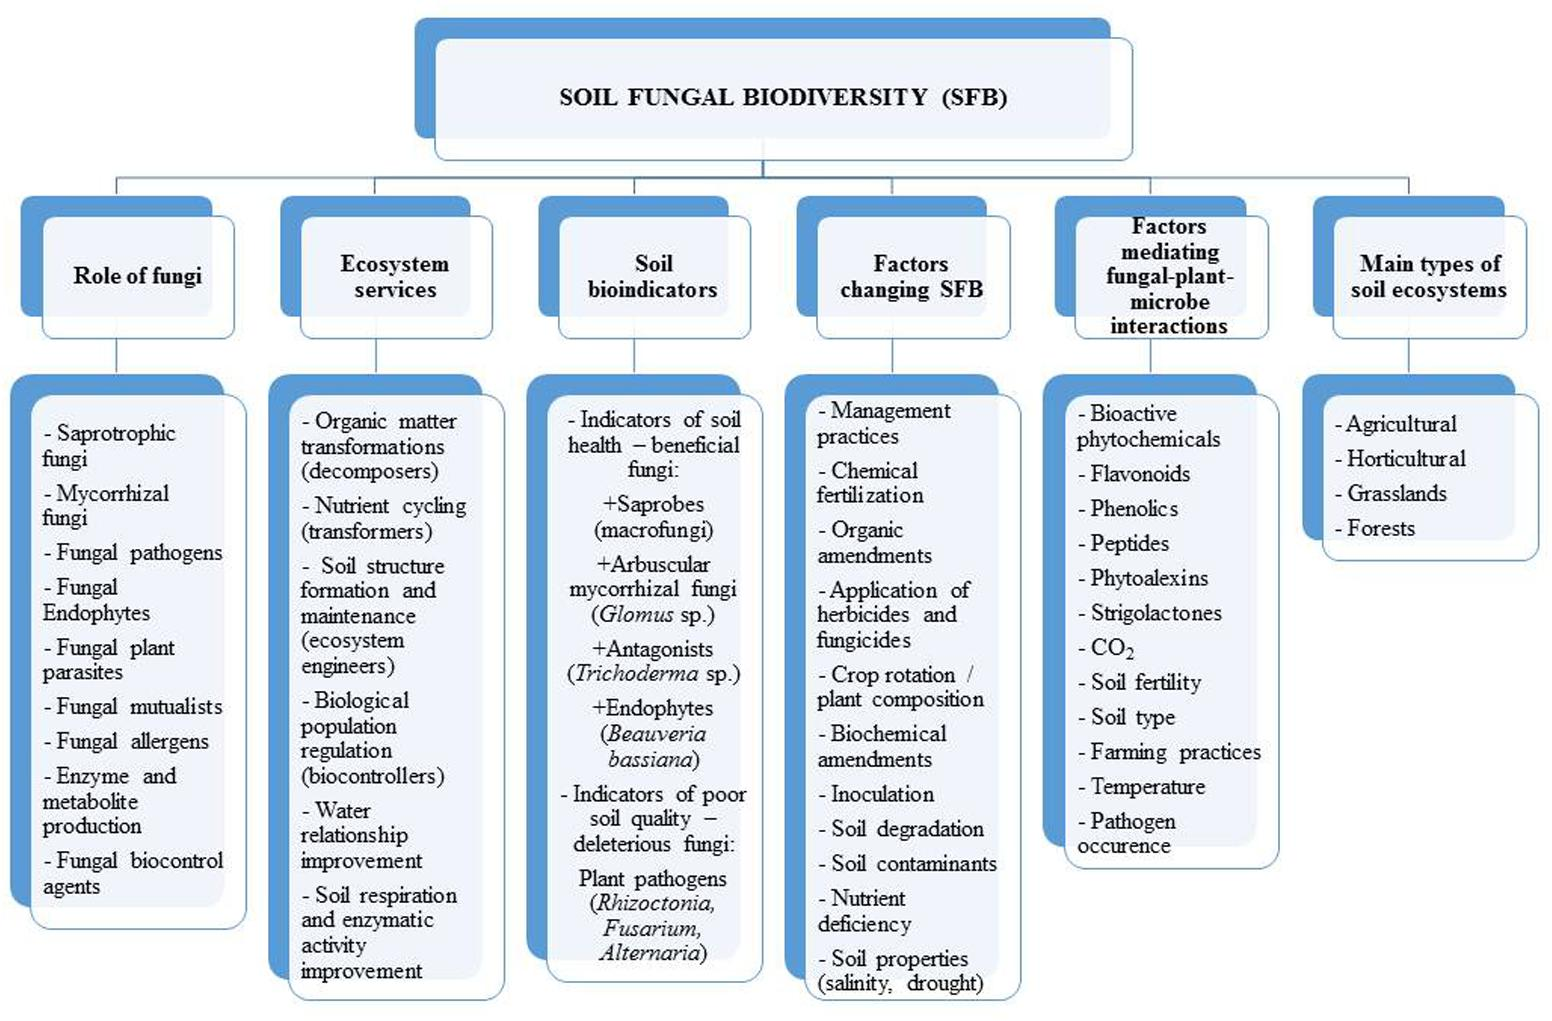 Frontiers | Fungal Biodiversity and Their Role in Soil Health